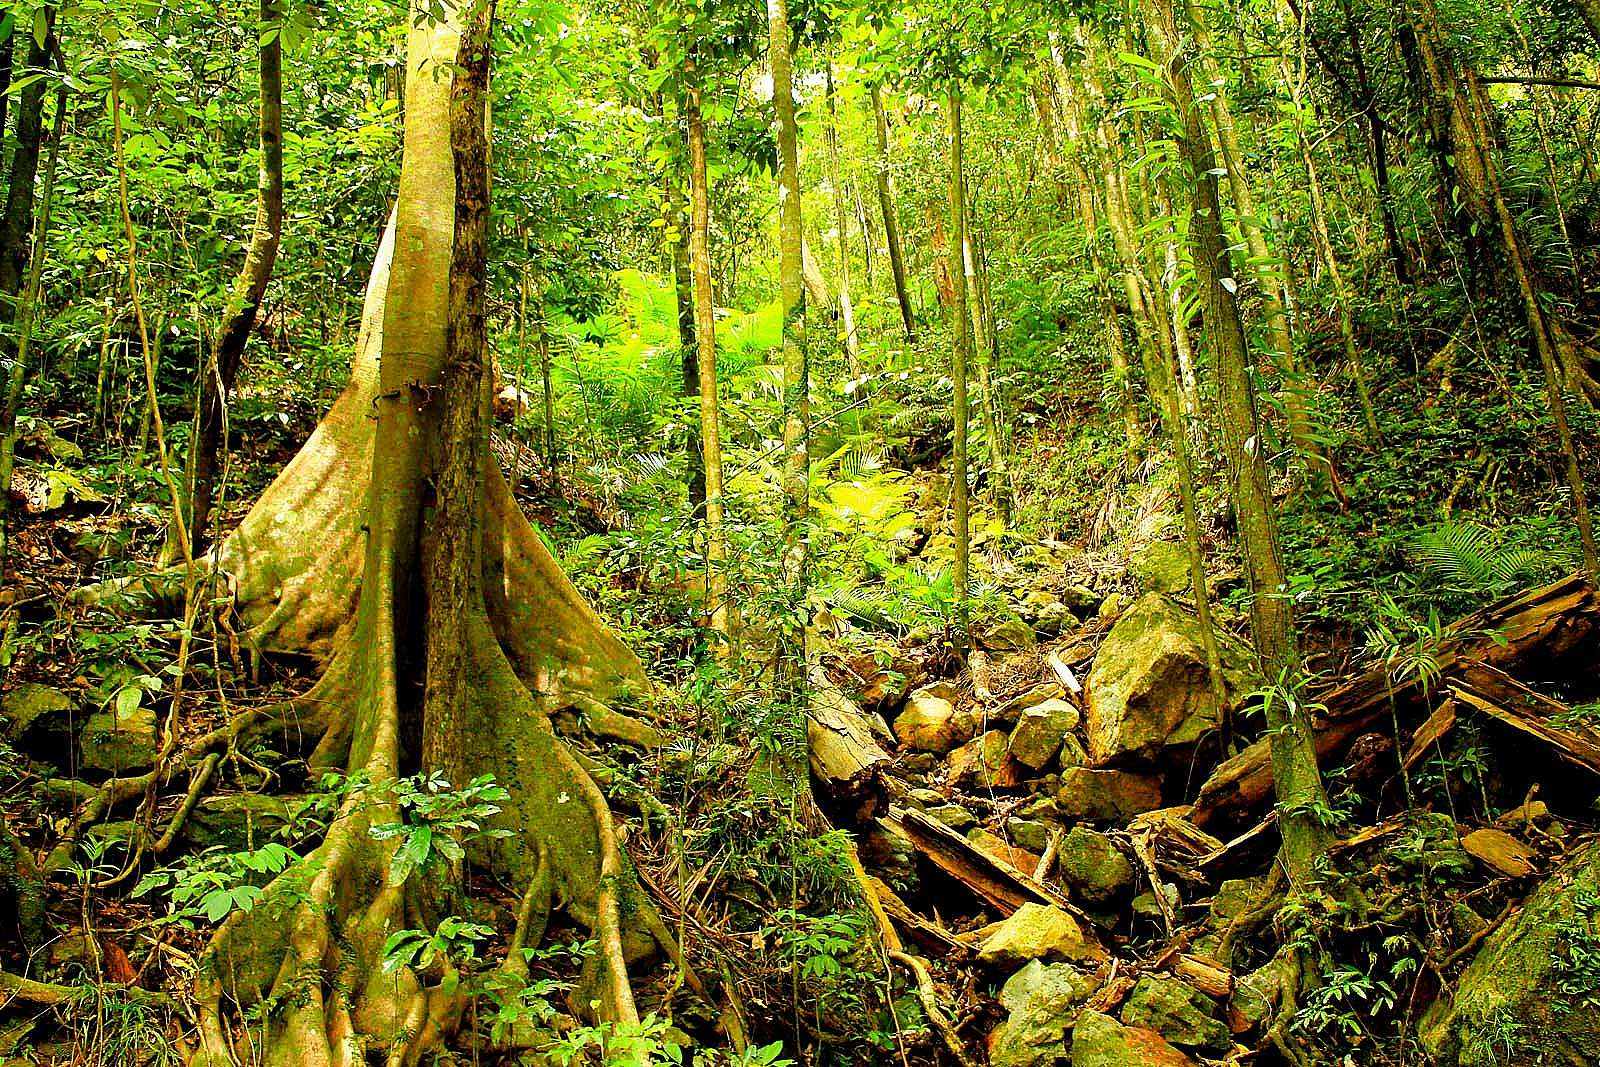 Image for Discovery Tours Australia - Half Day Rainforest & Waterfall Experience - PM